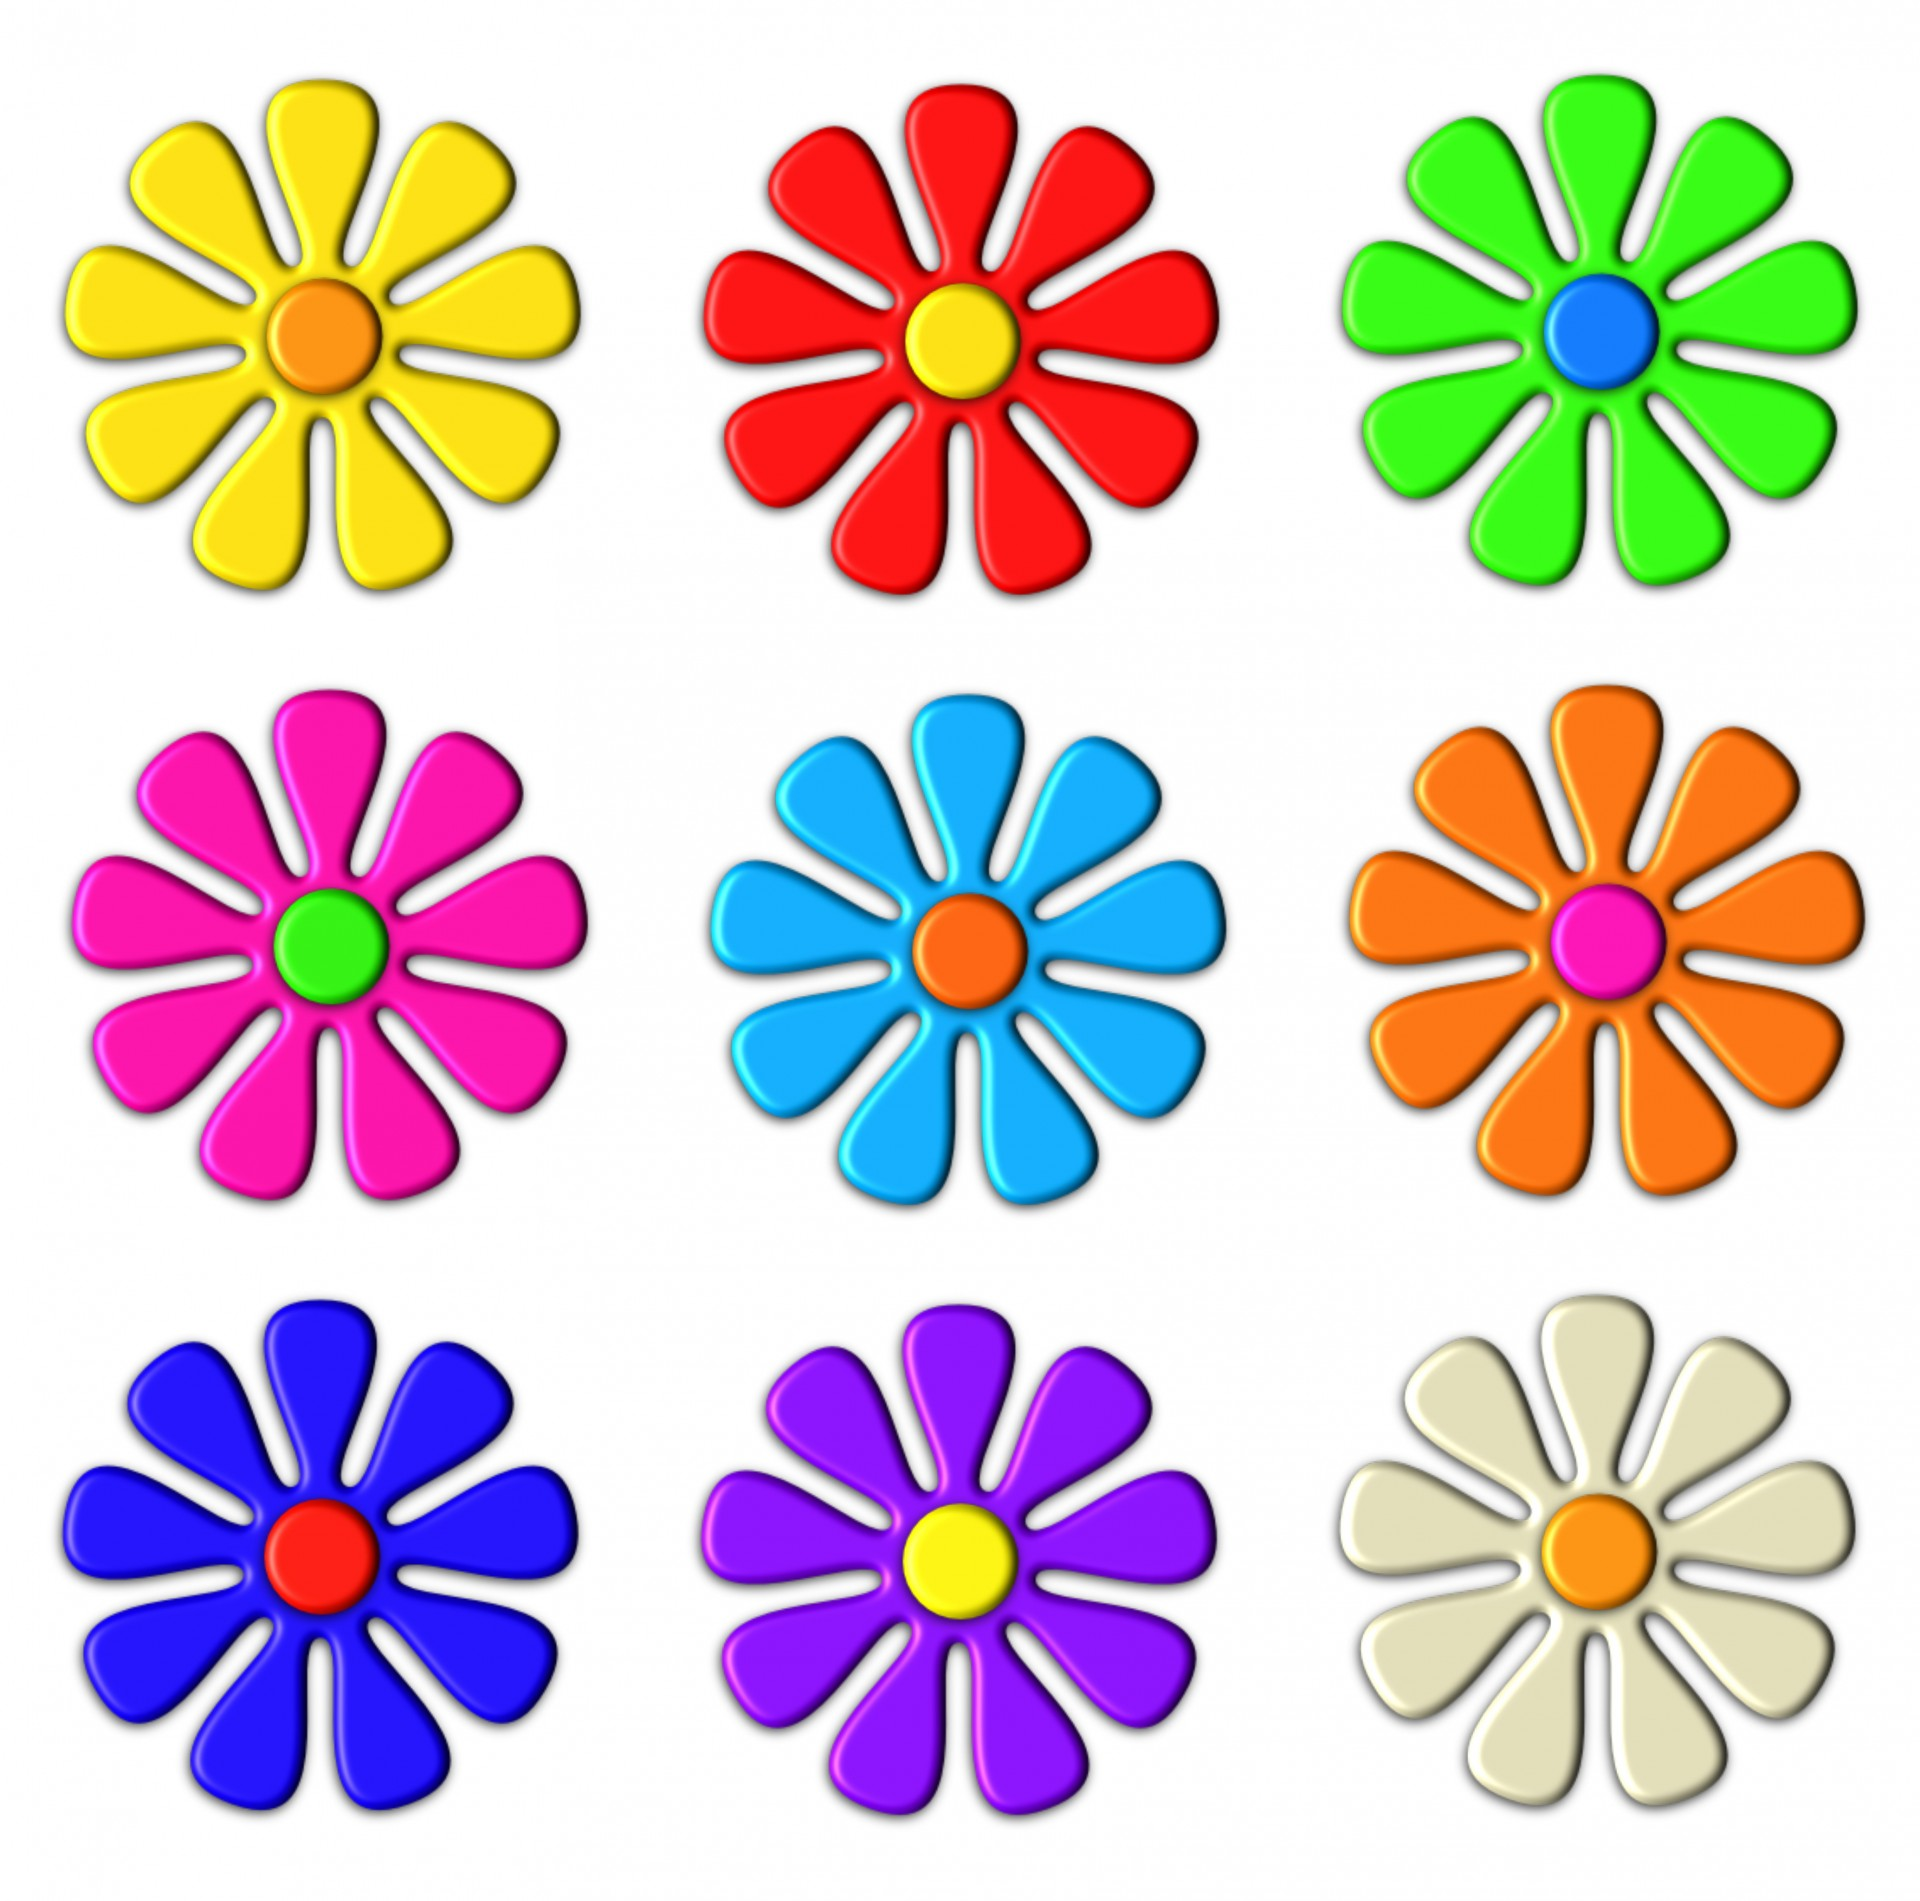 fall flowers clipart at getdrawings com free for personal use fall rh getdrawings com flowers clip art lines flowers clip art images